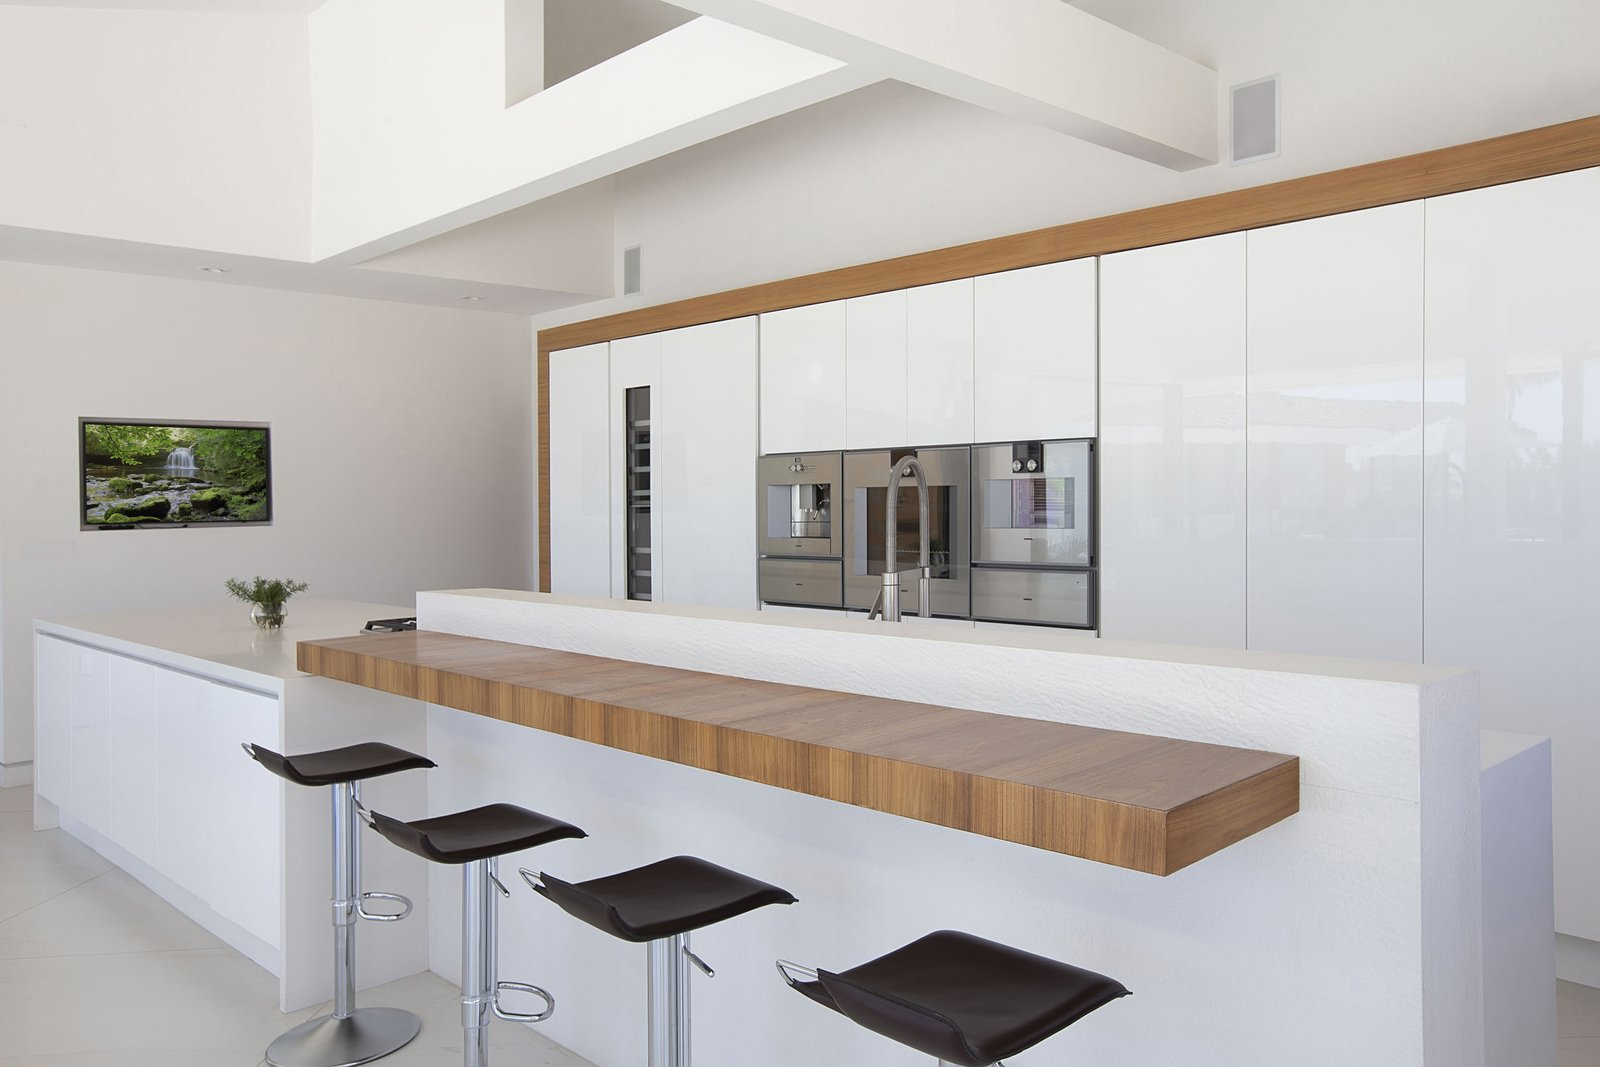 Kitchen, Refrigerator, Ceramic Tile, White, Wall Oven, Range, Wine Cooler, and Quartzite Aster Cucine's eco-friendly cabinetry from Italy was chosen along with high-end, efficient appliances and fixtures.  Best Kitchen Ceramic Tile Refrigerator Photos from A Renovated Midcentury in San Diego Is Sharp and Sustainable